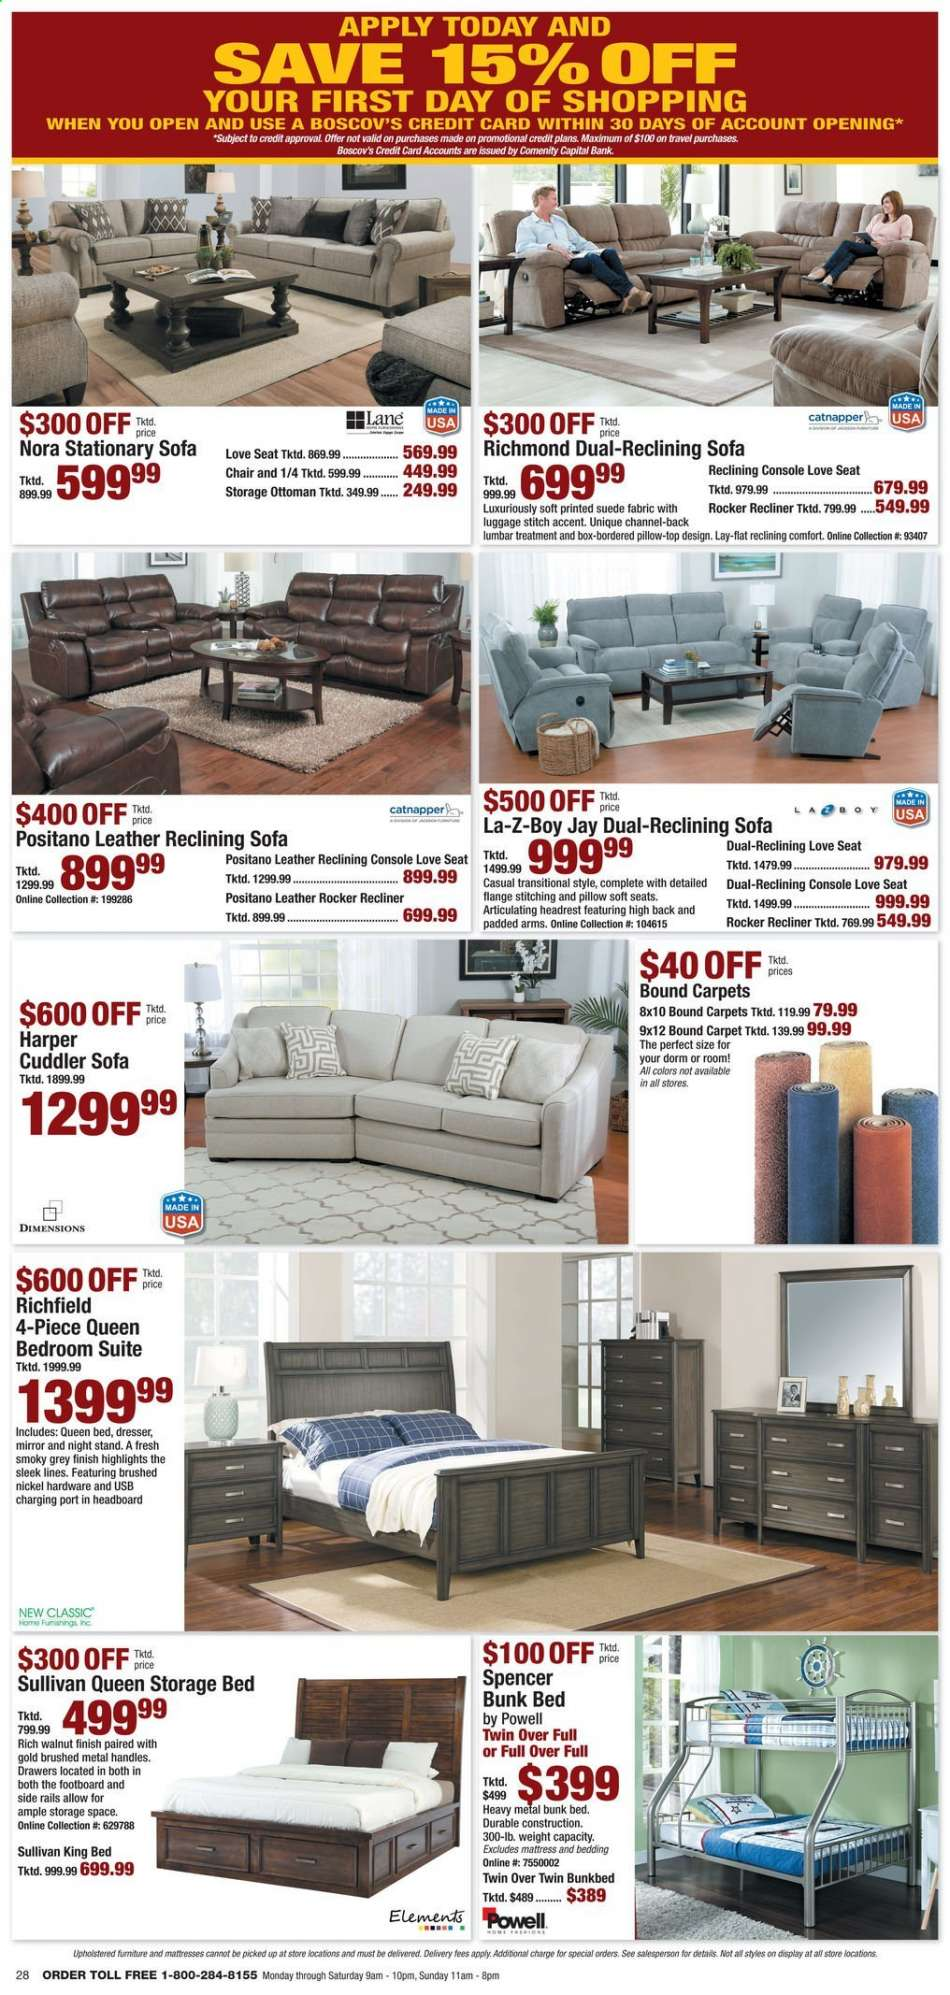 Surprising Boscovs Flyer 11 15 2019 11 24 2019 Weekly Ads Us Gmtry Best Dining Table And Chair Ideas Images Gmtryco